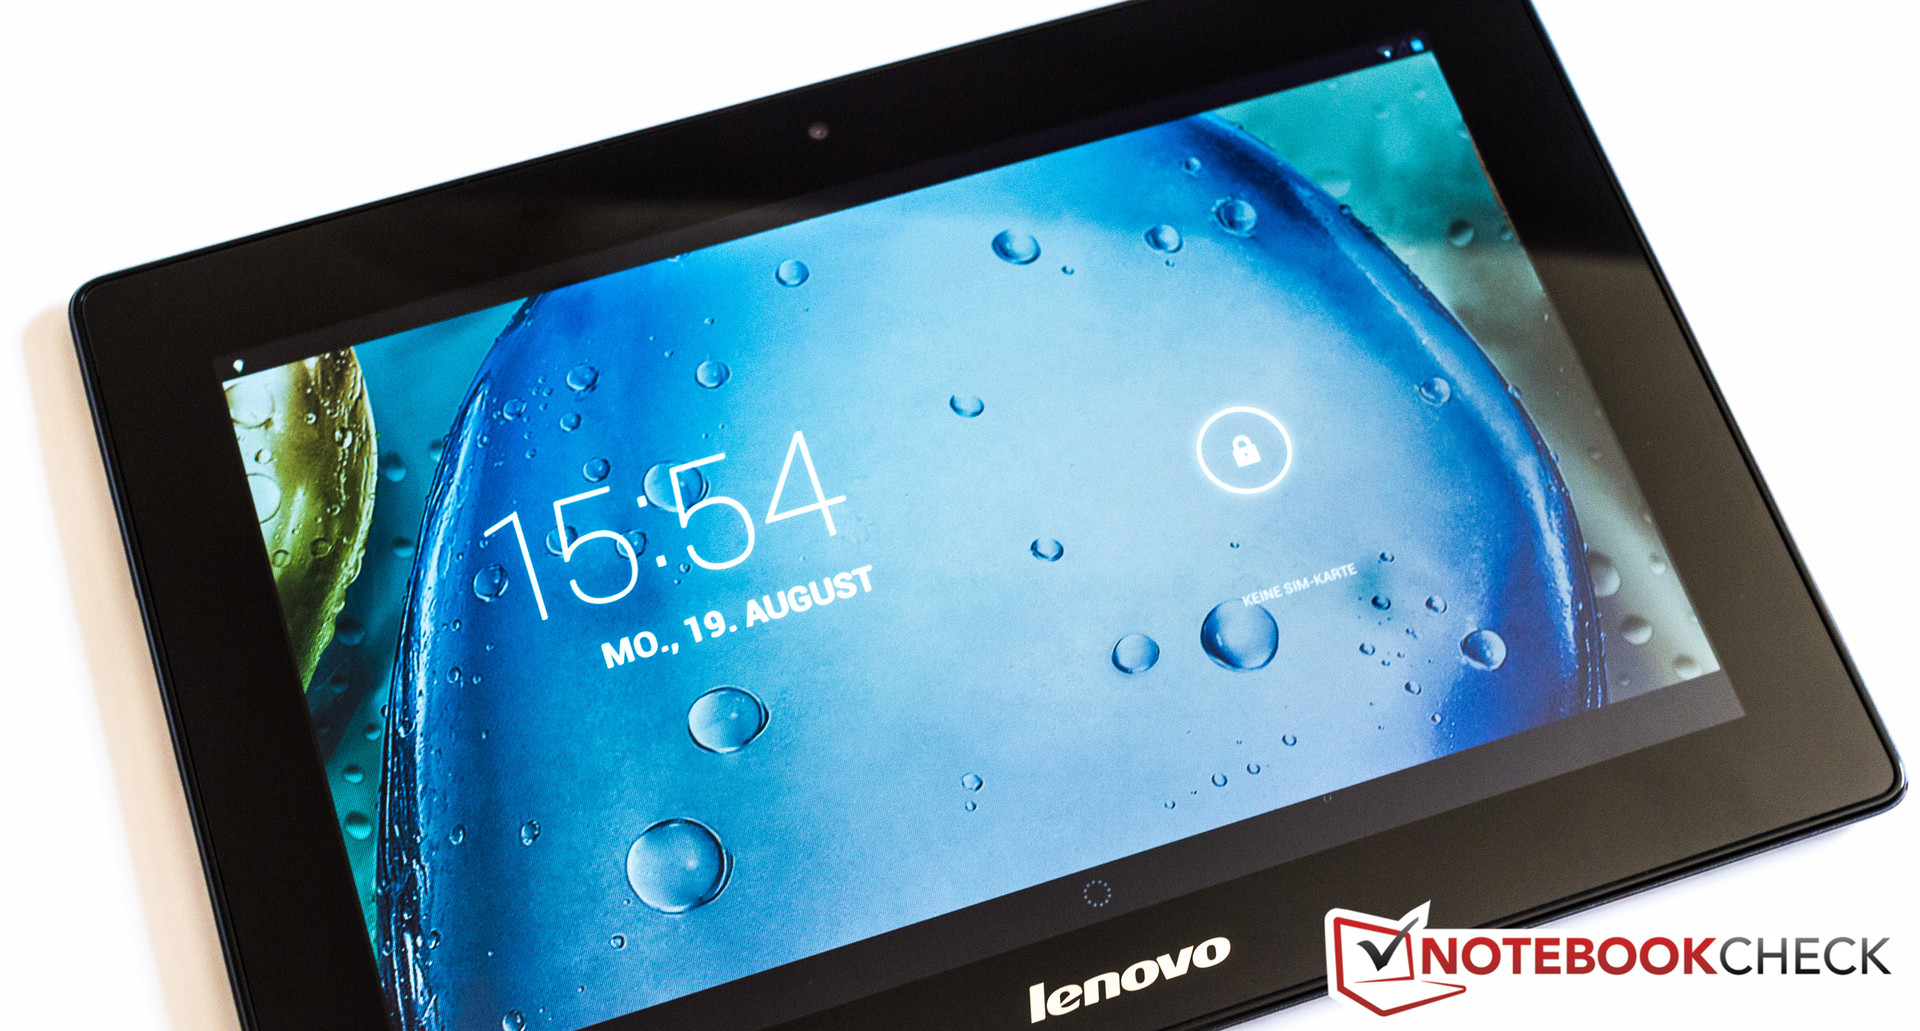 Lenovo S6000 Tablet: model overview, customer reviews and expert reviews